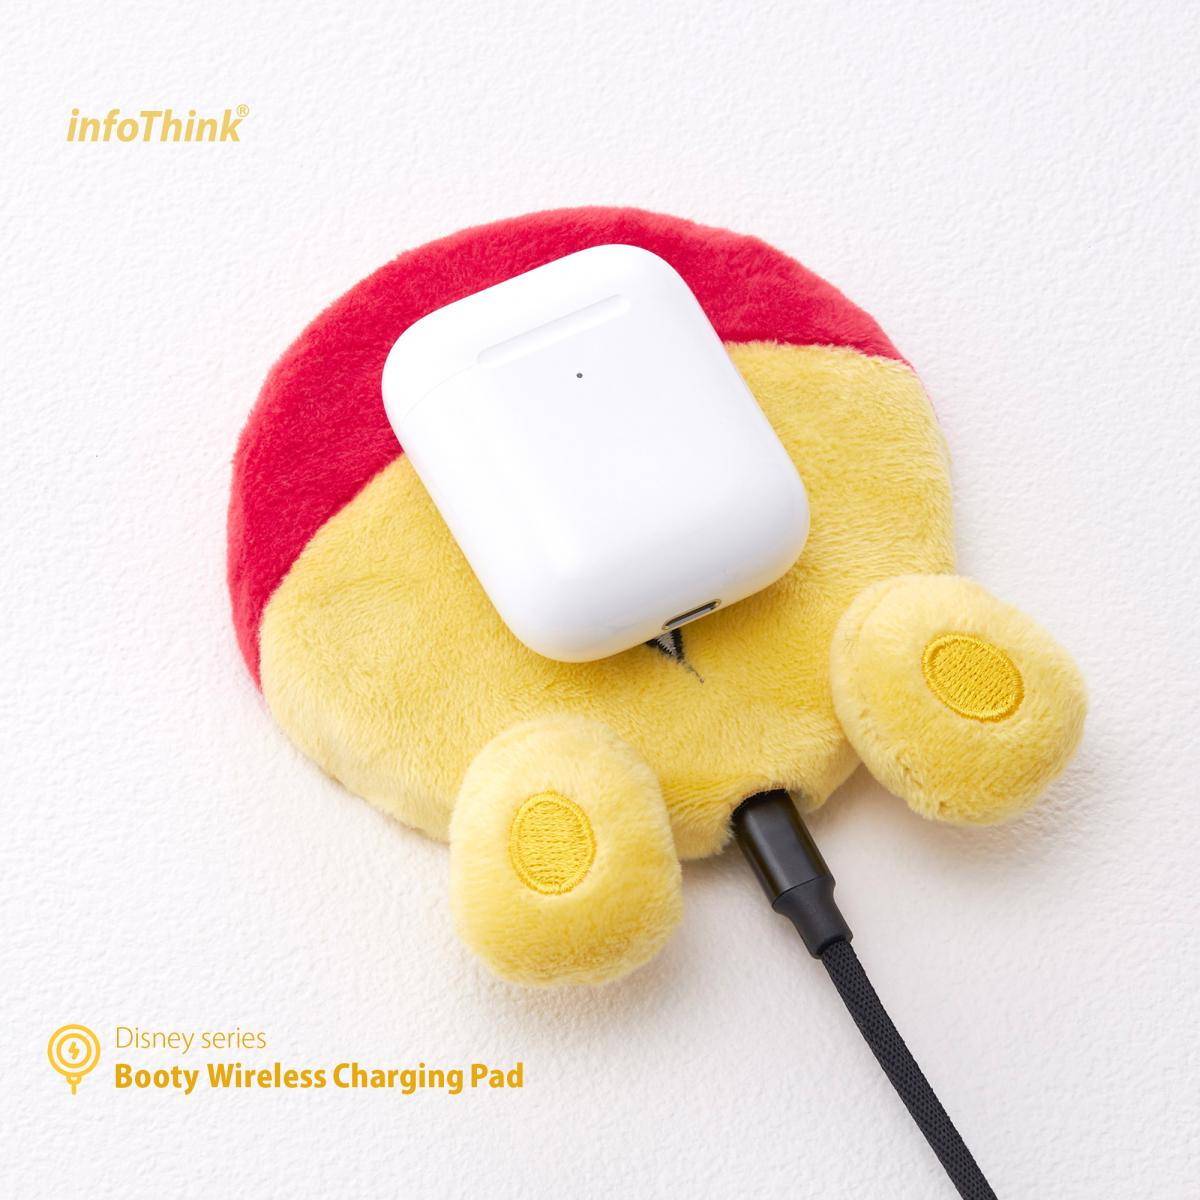 infothink booty wireless airpods charging pad winnie pooh